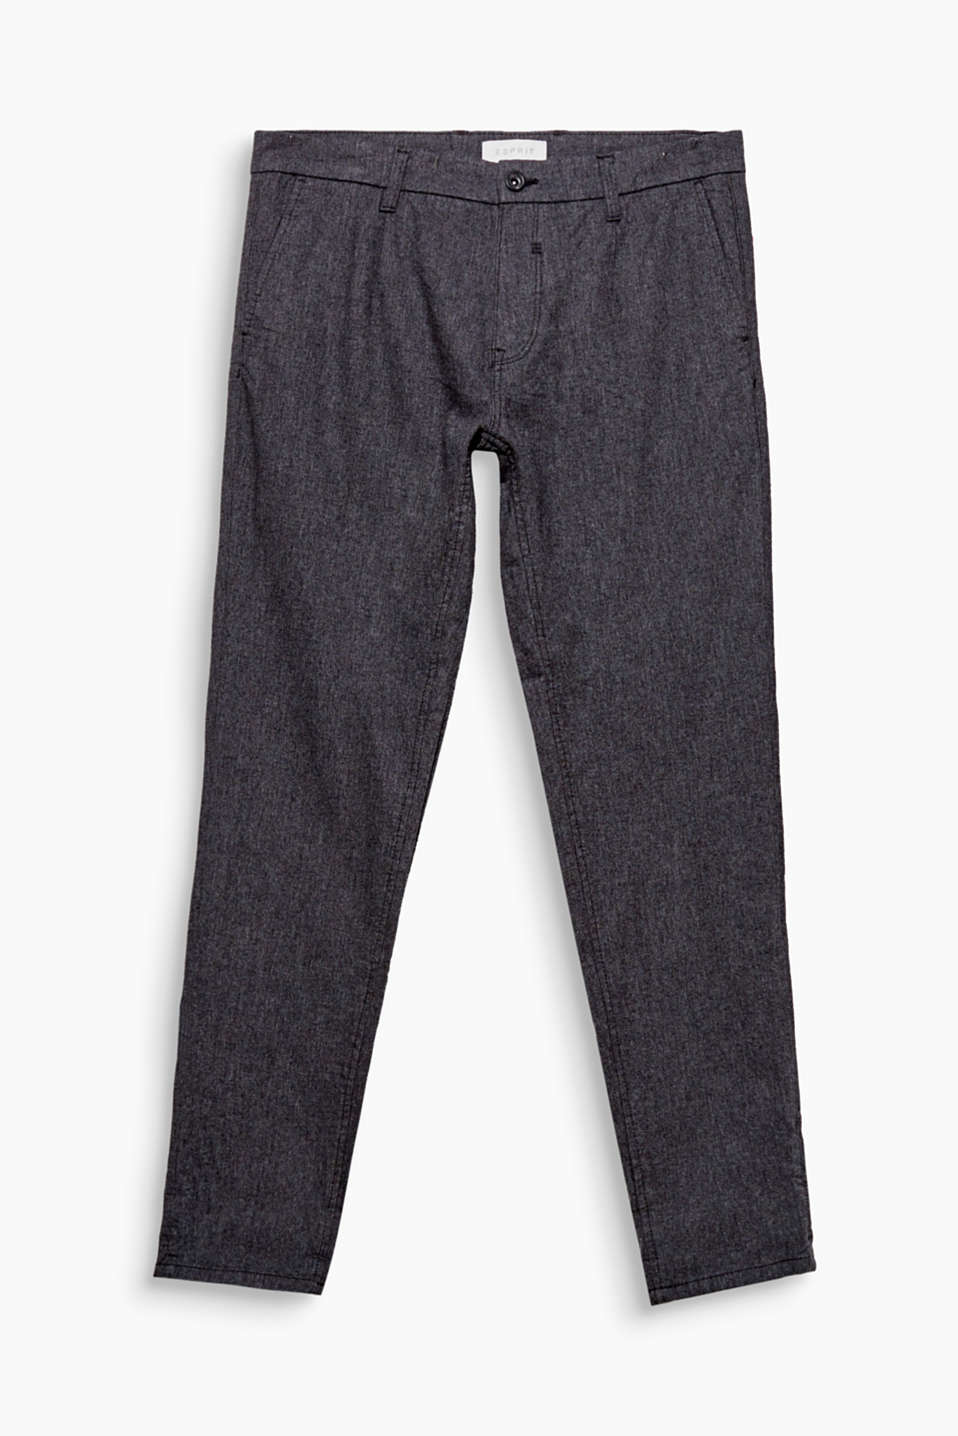 Trendy and loose cut! These chinos impress with their fine texture and added stretch for comfort.